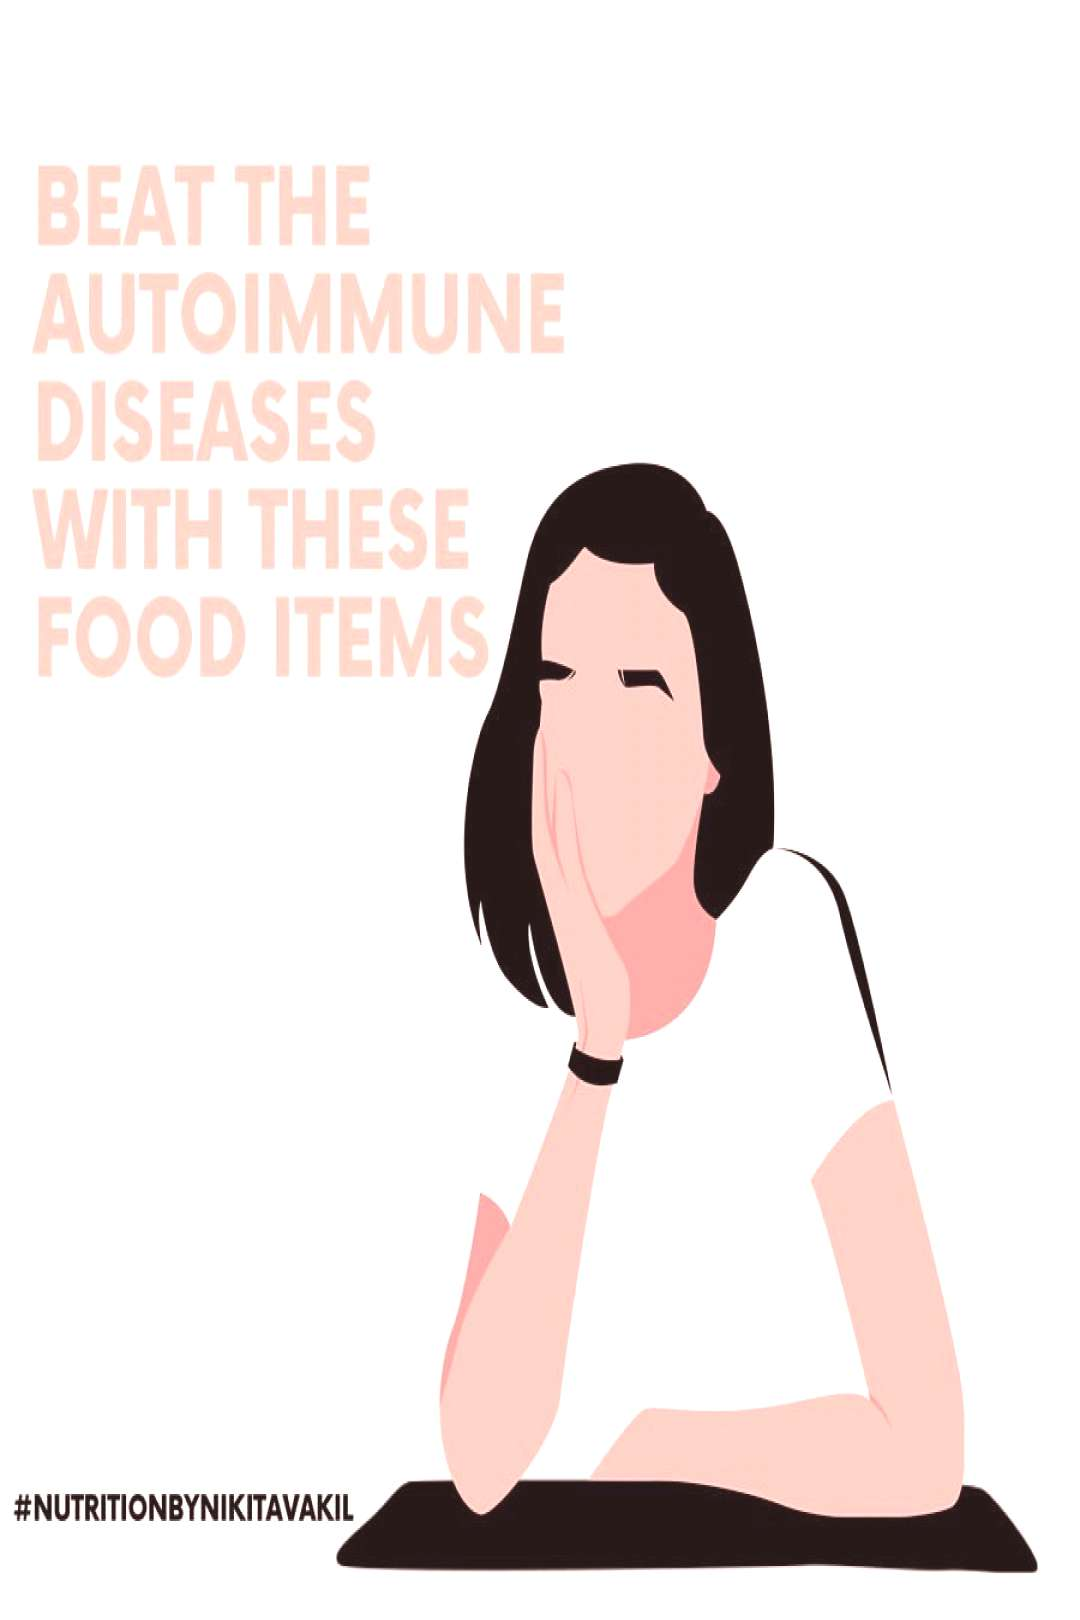 Image may contain possible text that says BEAT THE AUTOIMMUNE D